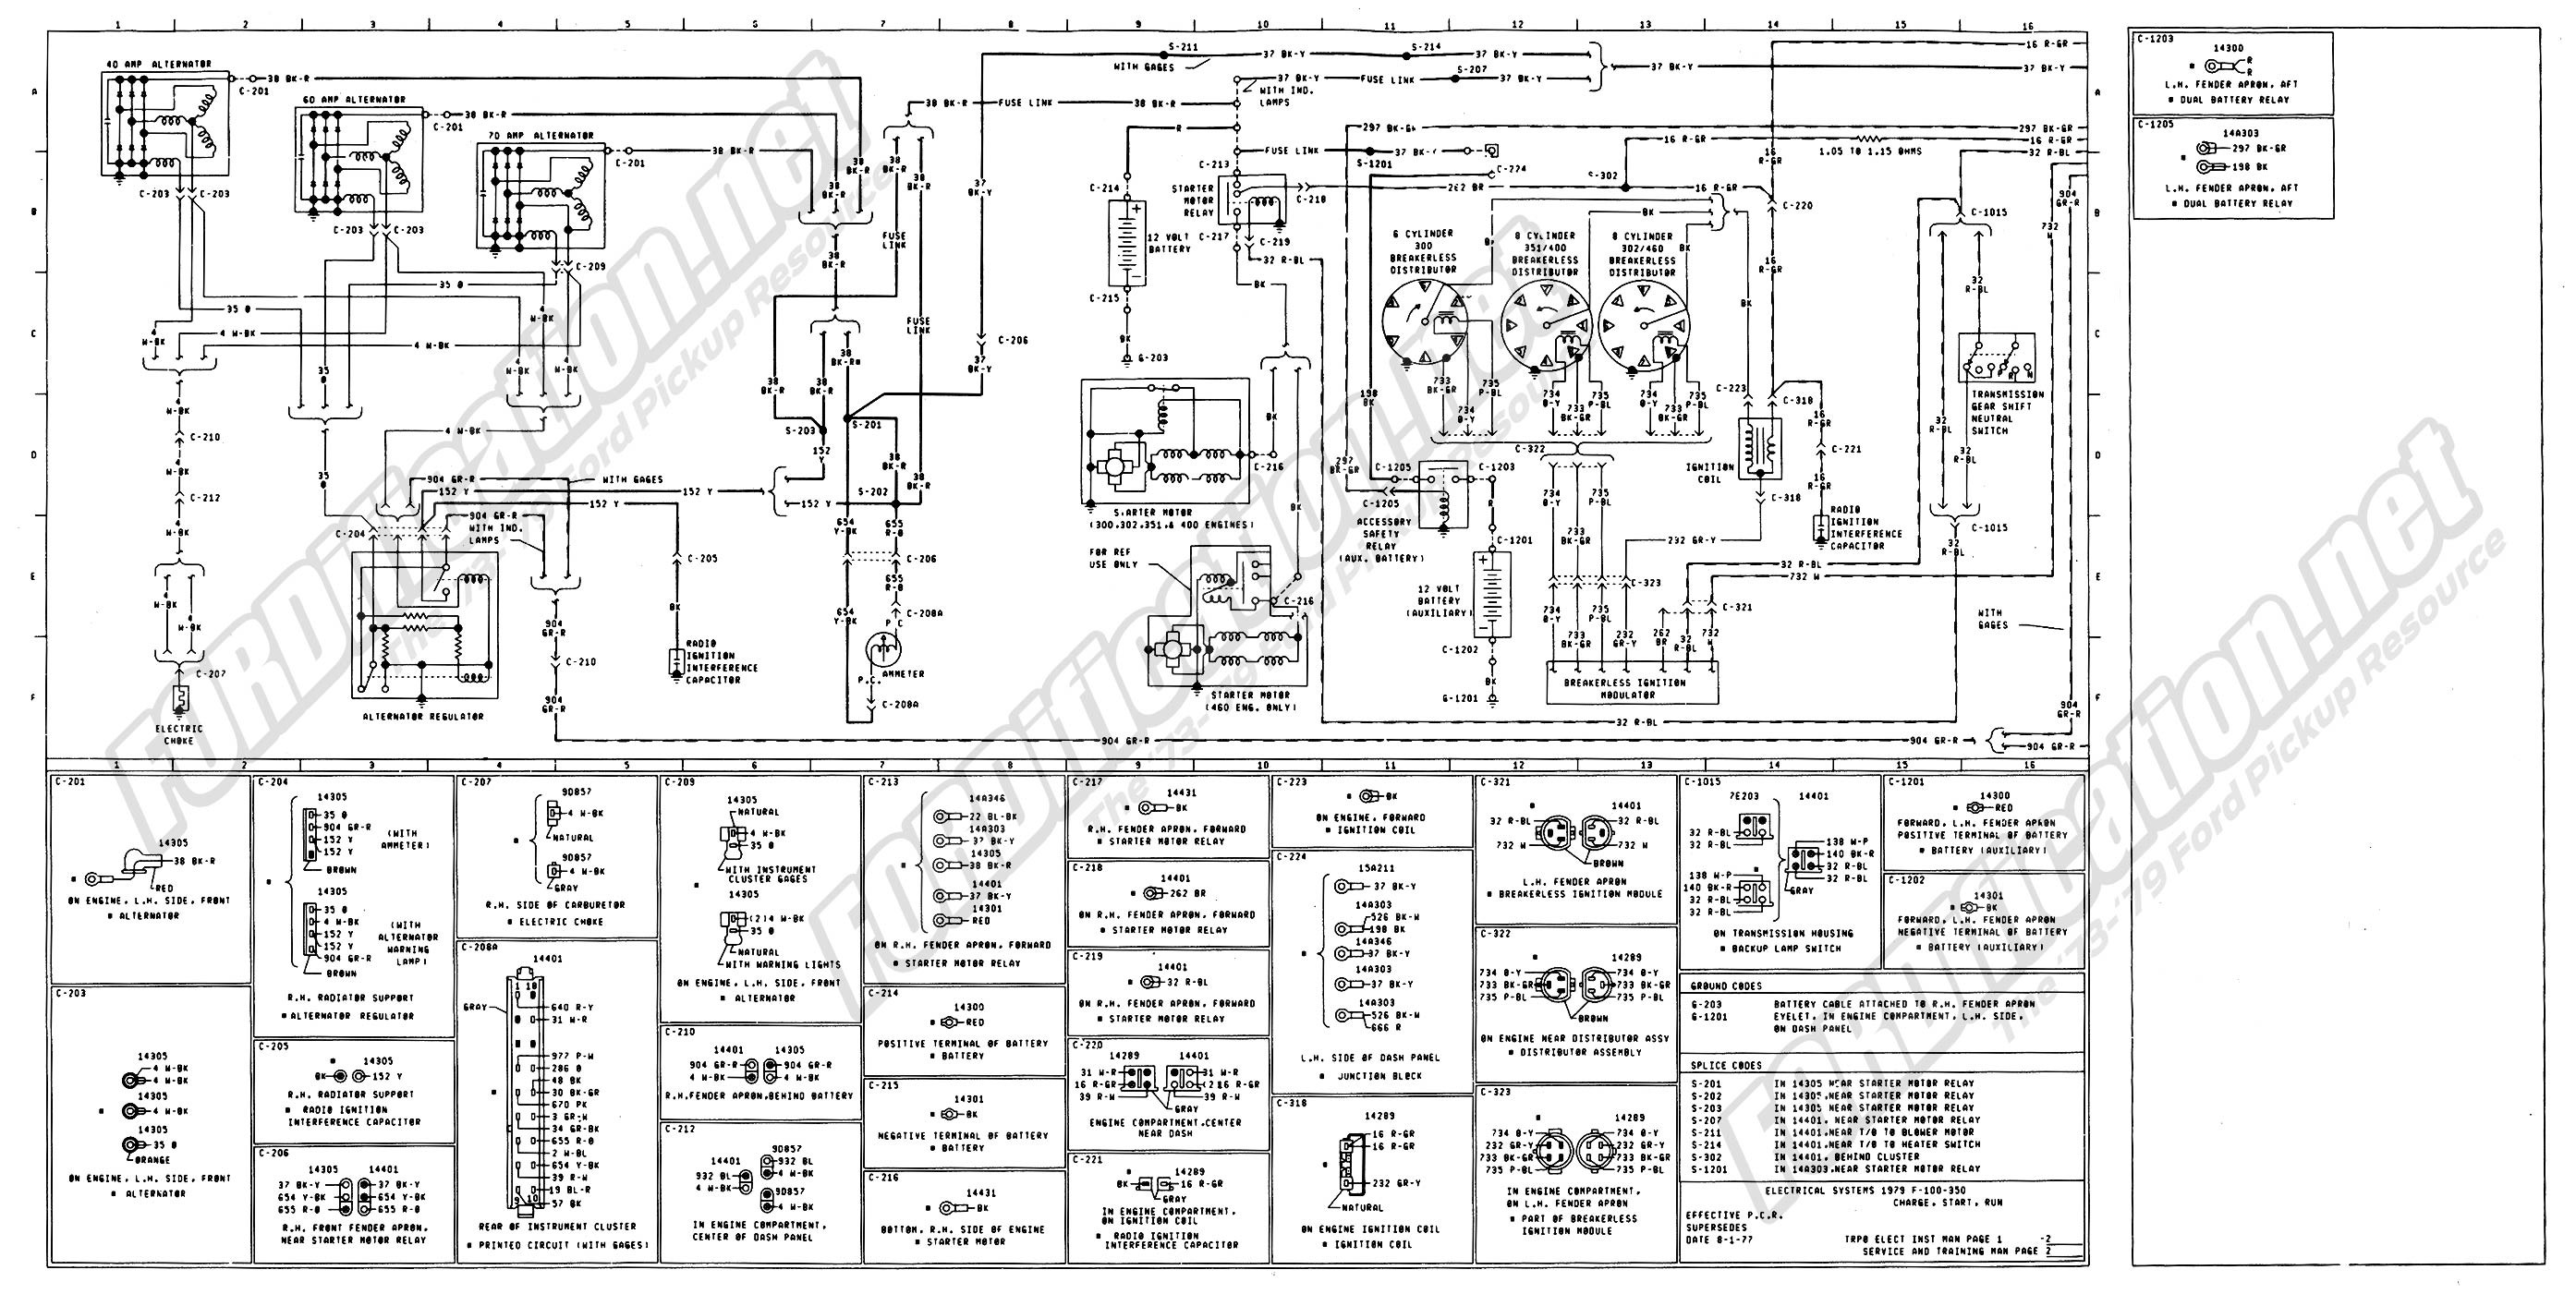 1978 Ford Alternator Wiring | Wiring Diagram Ford F Alternator Wiring Diagram on ford f250 horn wiring diagram, ford f250 reverse lights wiring diagram, ford f250 trailer wiring diagram,